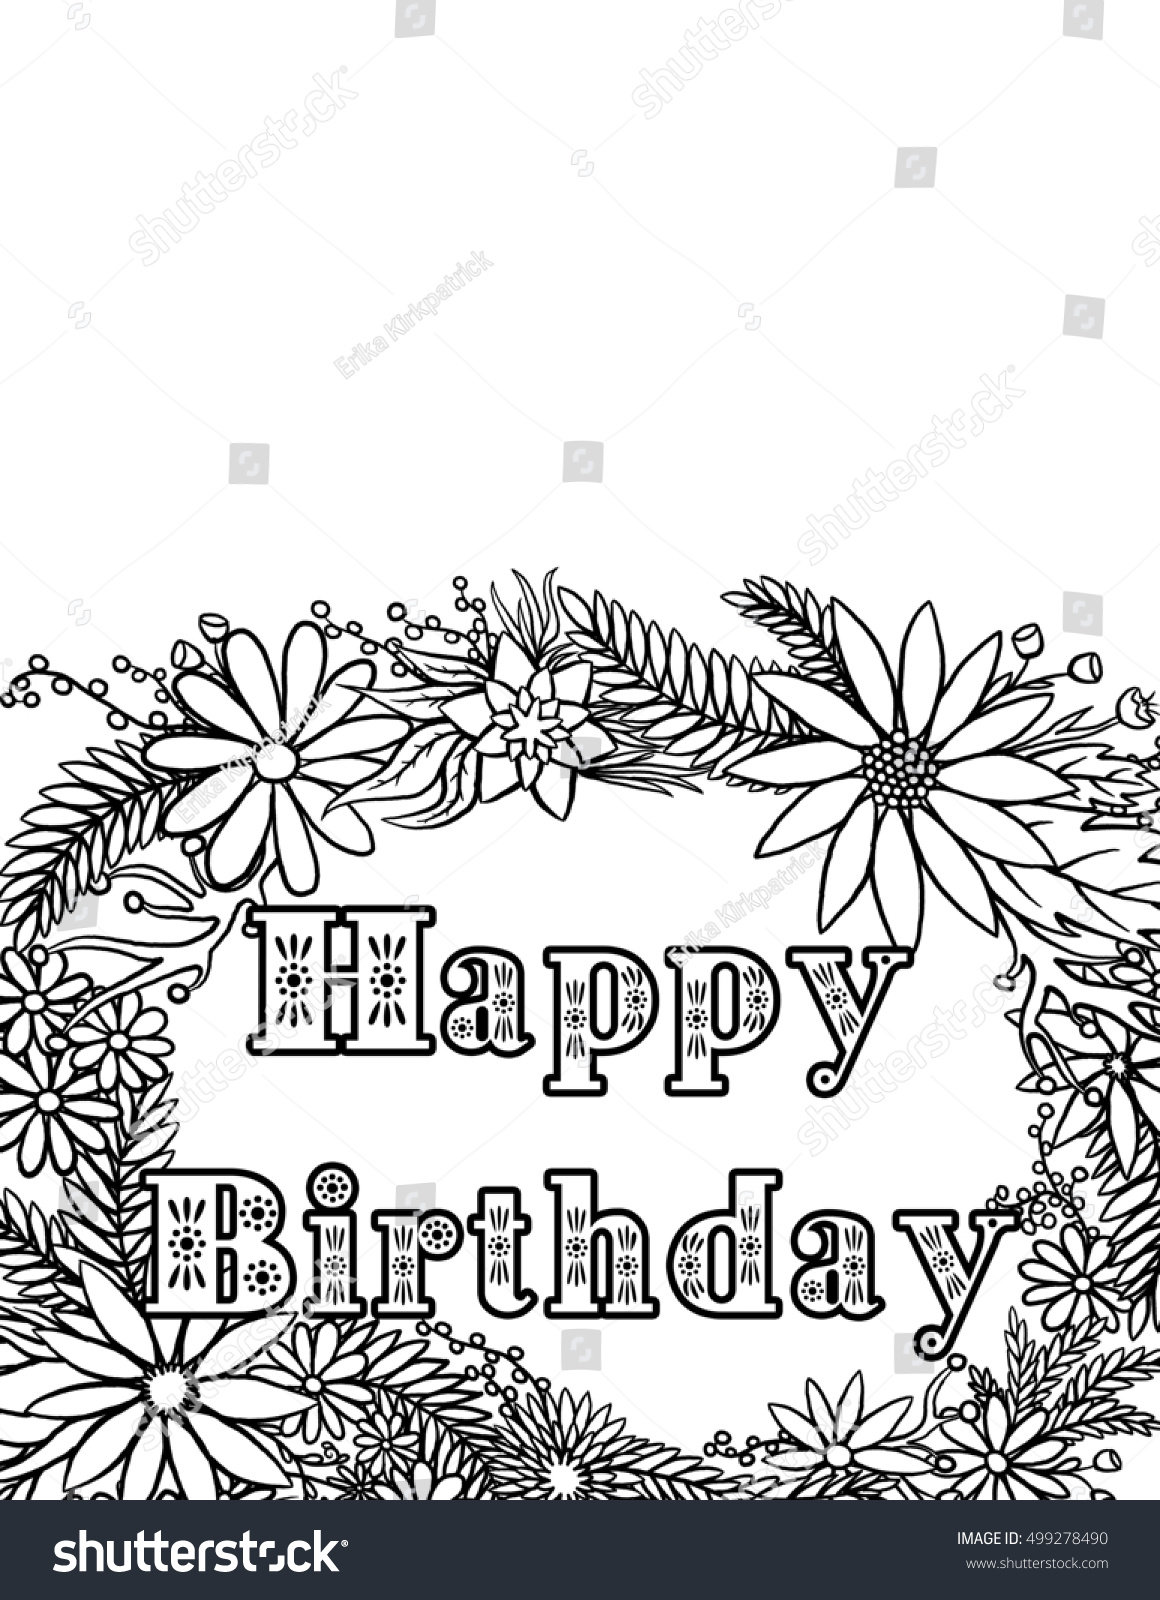 Happy Birthday Card Coloring Page Illustration 499278490 – Coloring Pages of Happy Birthday Cards